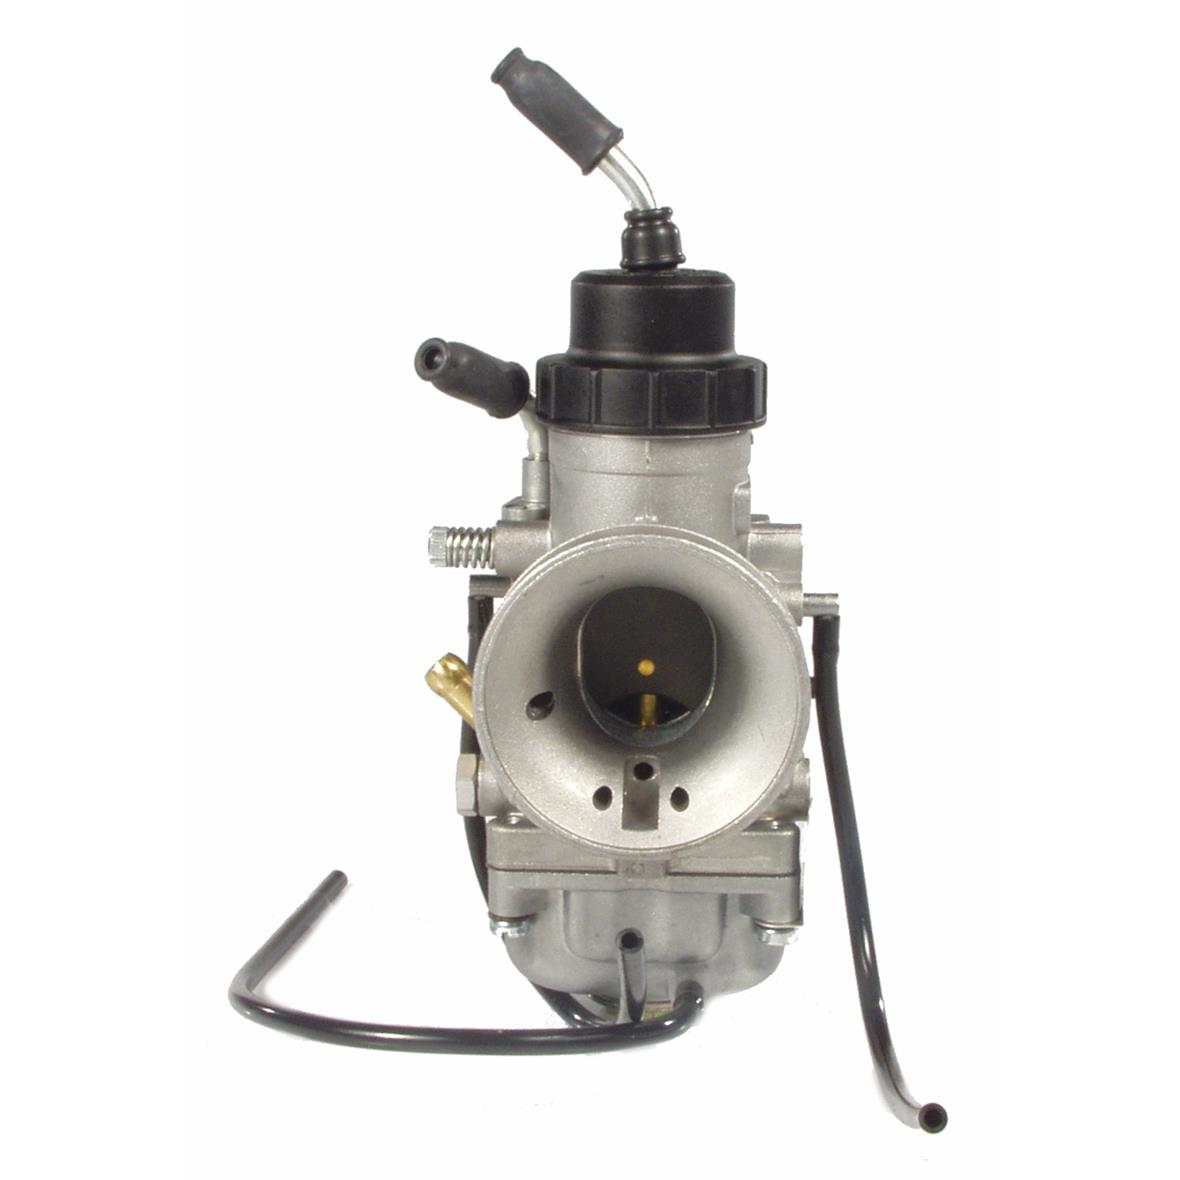 Product Image for 'Carburetor DELL'ORTO VHSA 30MS, oval flat sliderTitle'